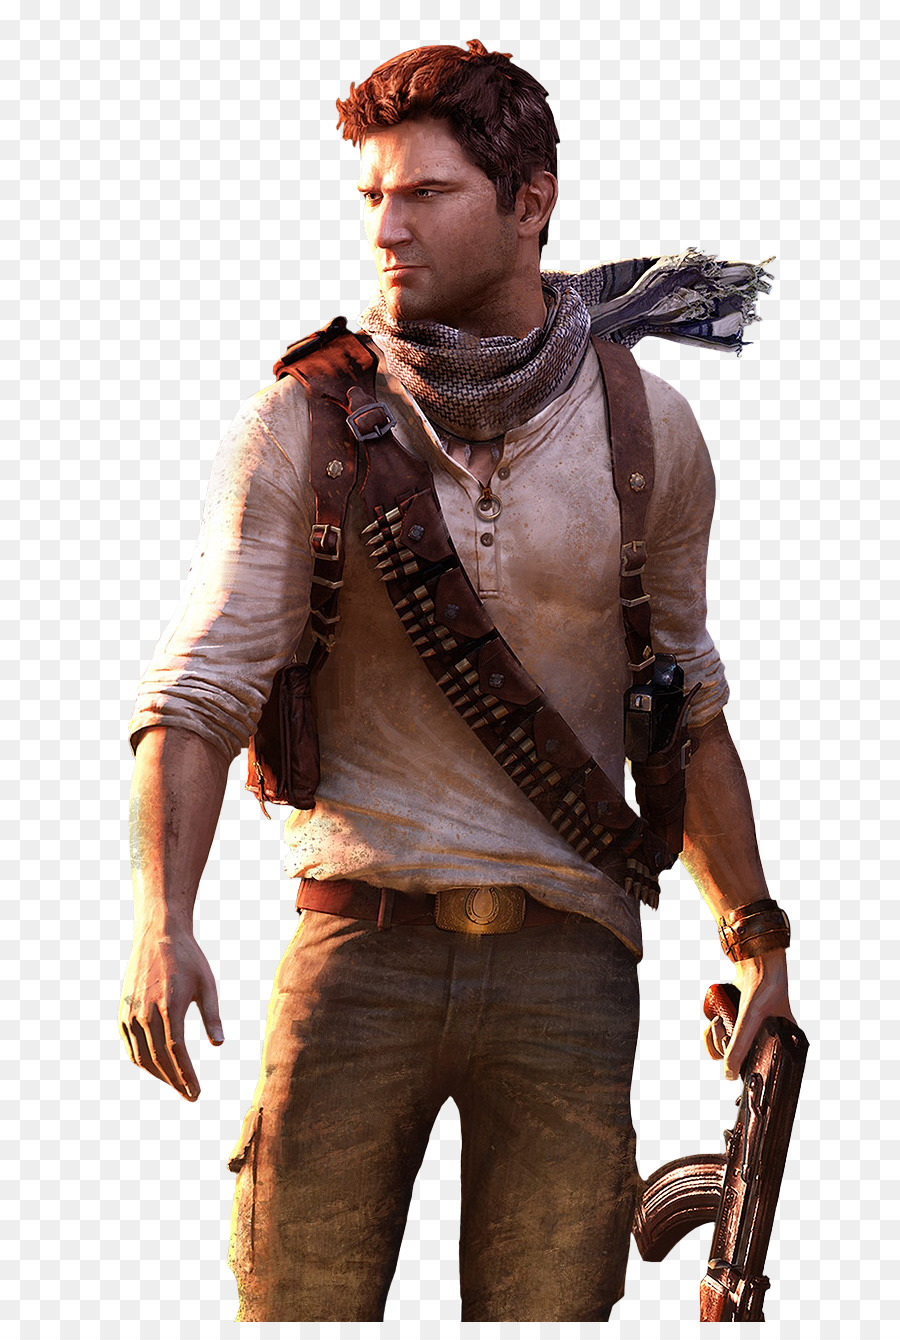 Uncharted 4 clipart image library stock Download uncharted 3 nathan drake clipart Francis Drake ... image library stock